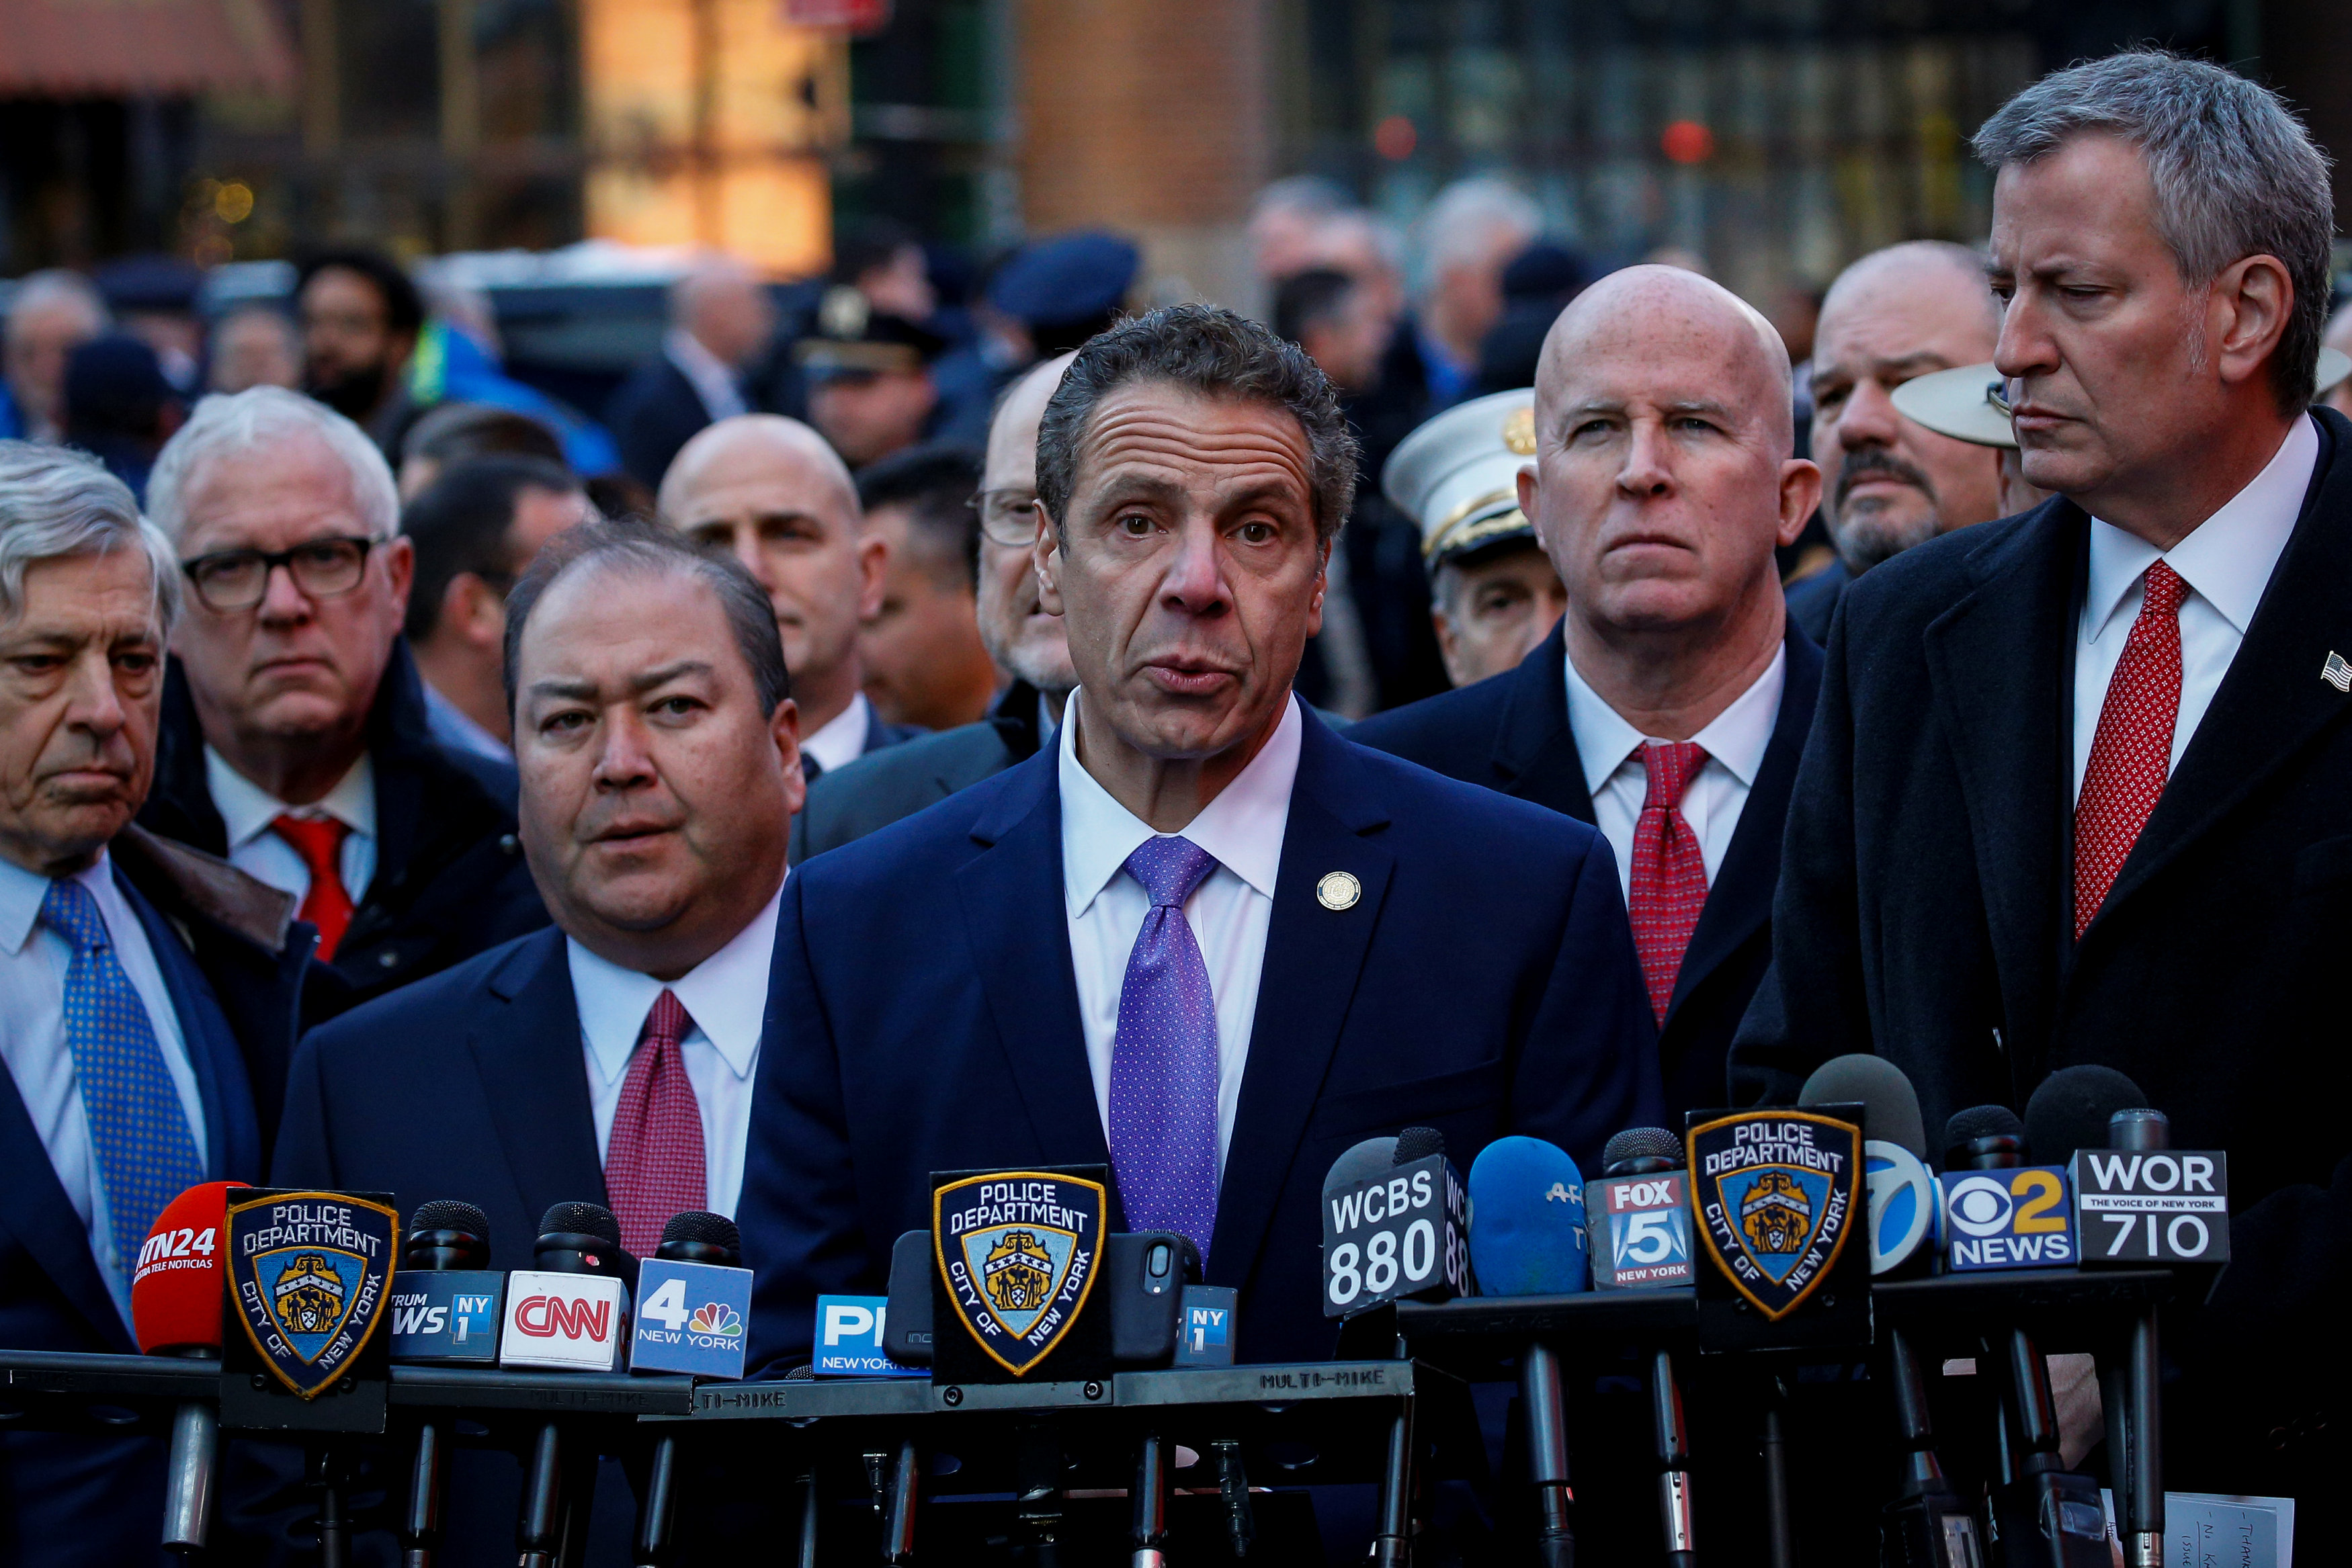 New York State Governor Andrew Cuomo speaks during a news conference outside the New York Port Authority Bus Terminal following reports of an explosion, in New York City, U.S. December 11, 2017.